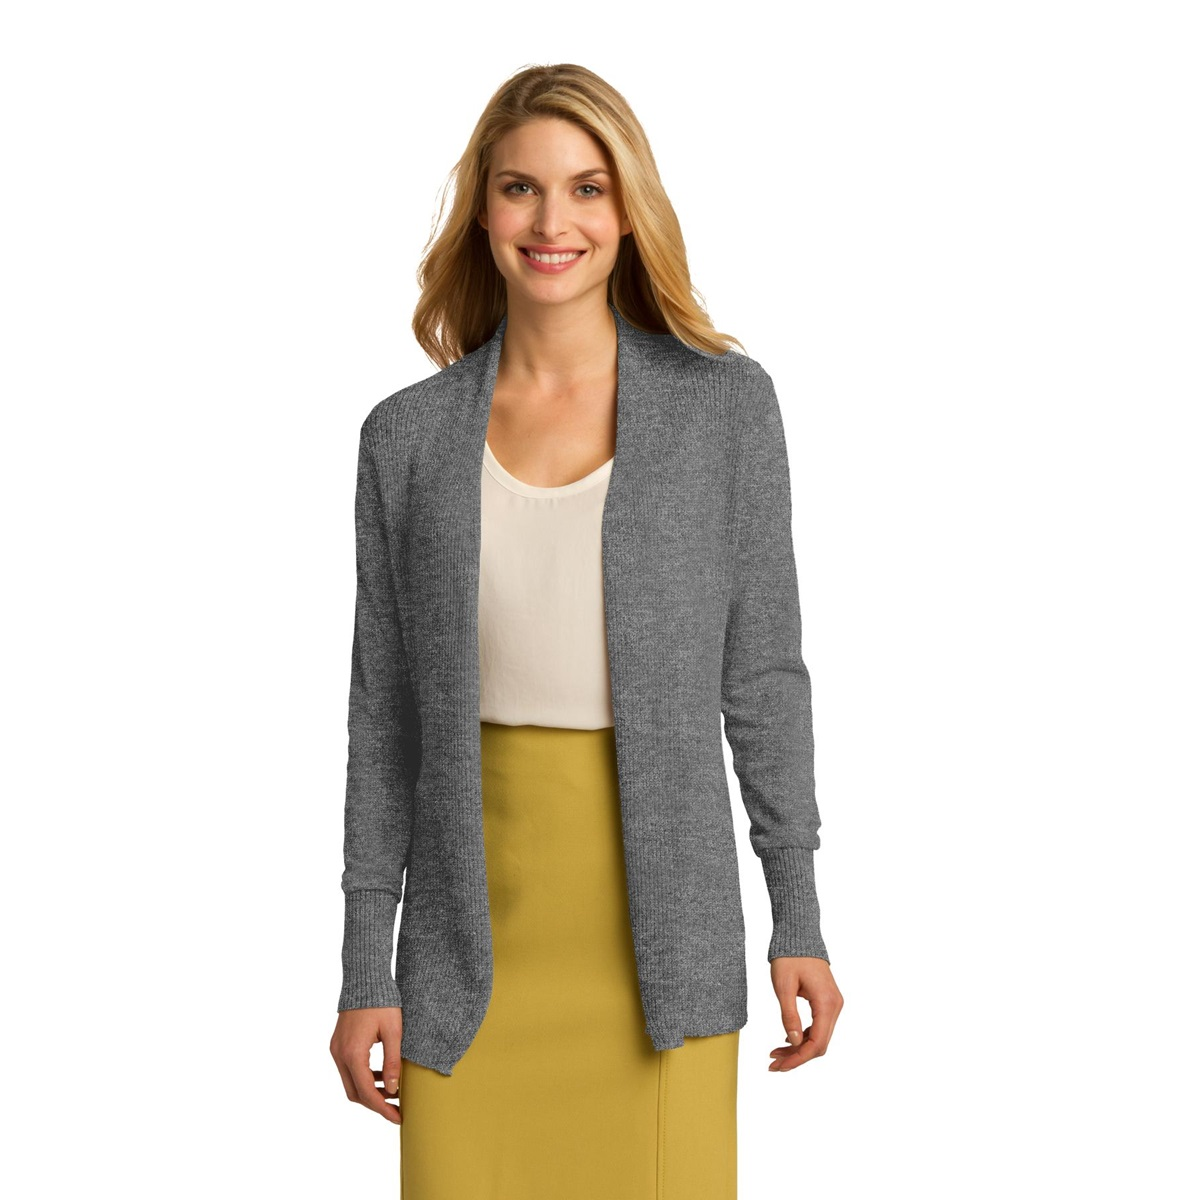 e7aebdd56a3 Port Authority LSW289 Ladies Open Front Cardigan - Medium Heather Grey